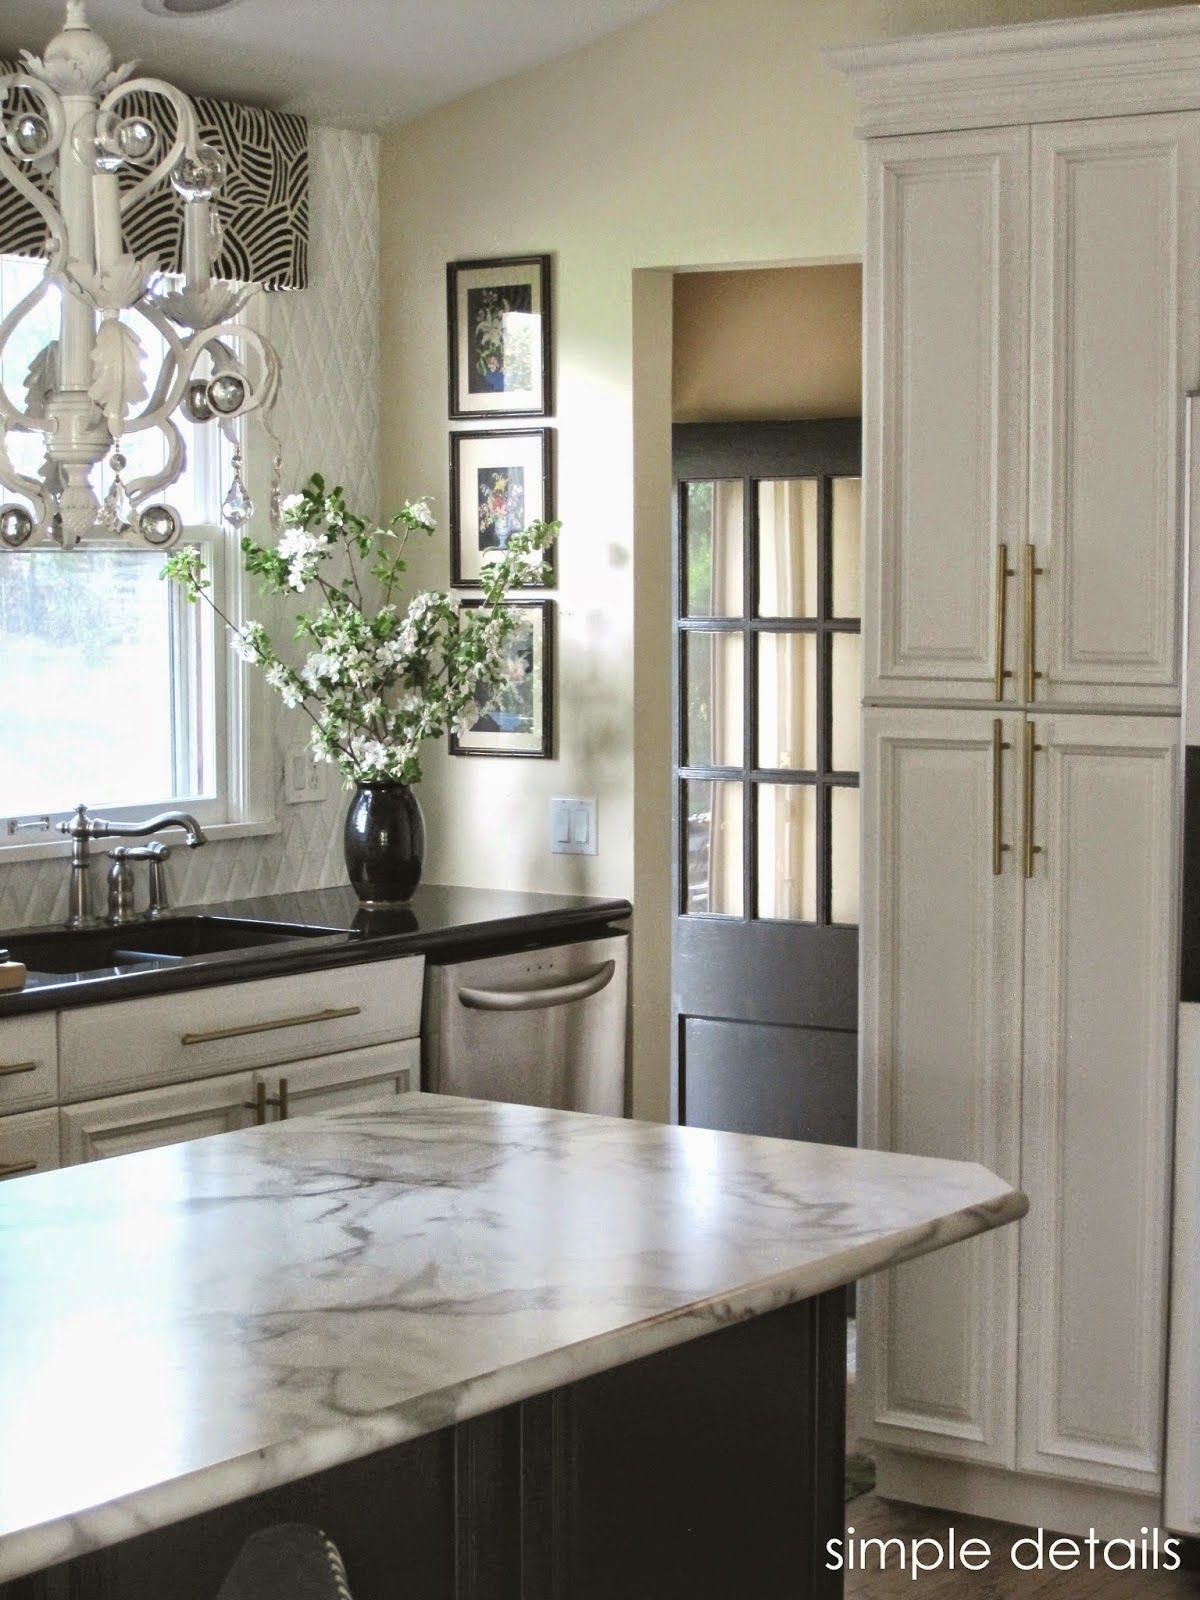 Formica Calacatta Marble Review Formica Kitchen Countertops Beautiful Kitchens Laminate Countertops